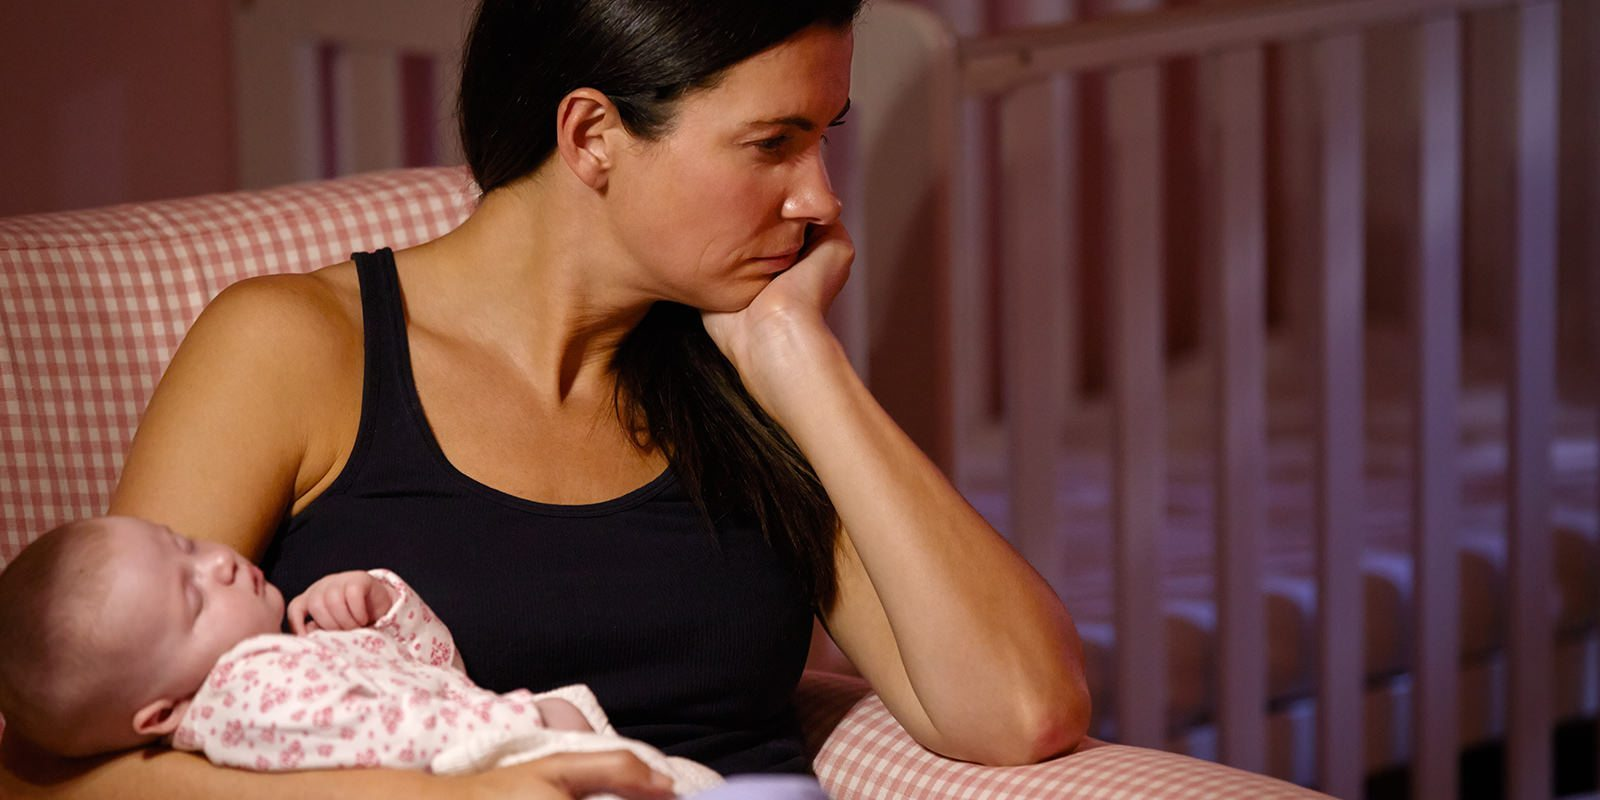 Woman Holding Child With Postpartum Depression